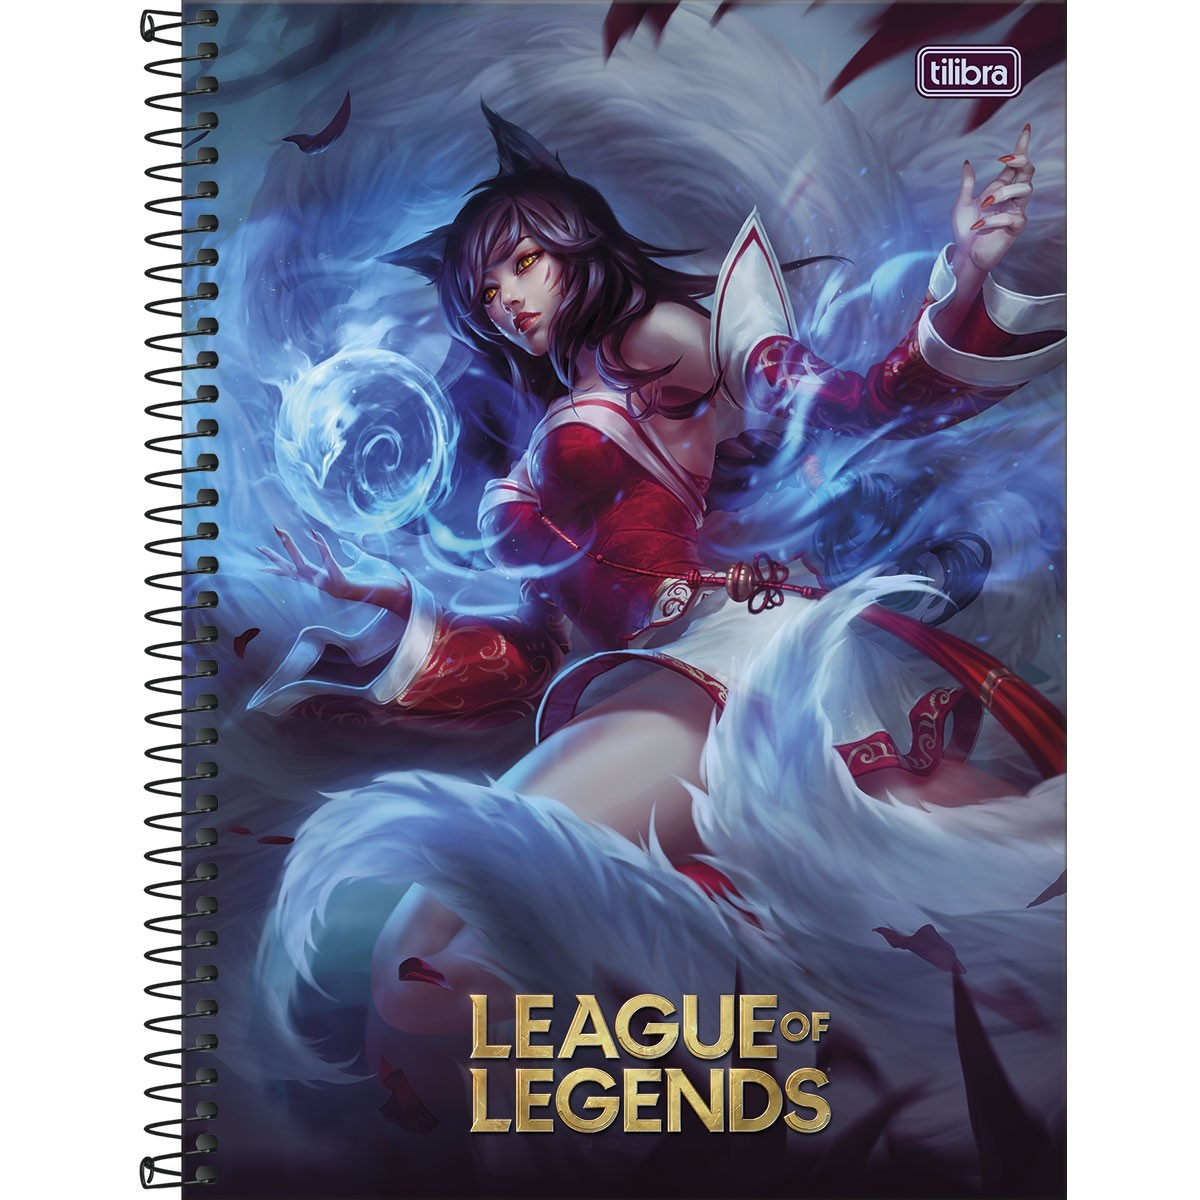 Caderno Espiral Capa Dura Universitário 1 Matéria League of Legends Ahri 80 Folhas